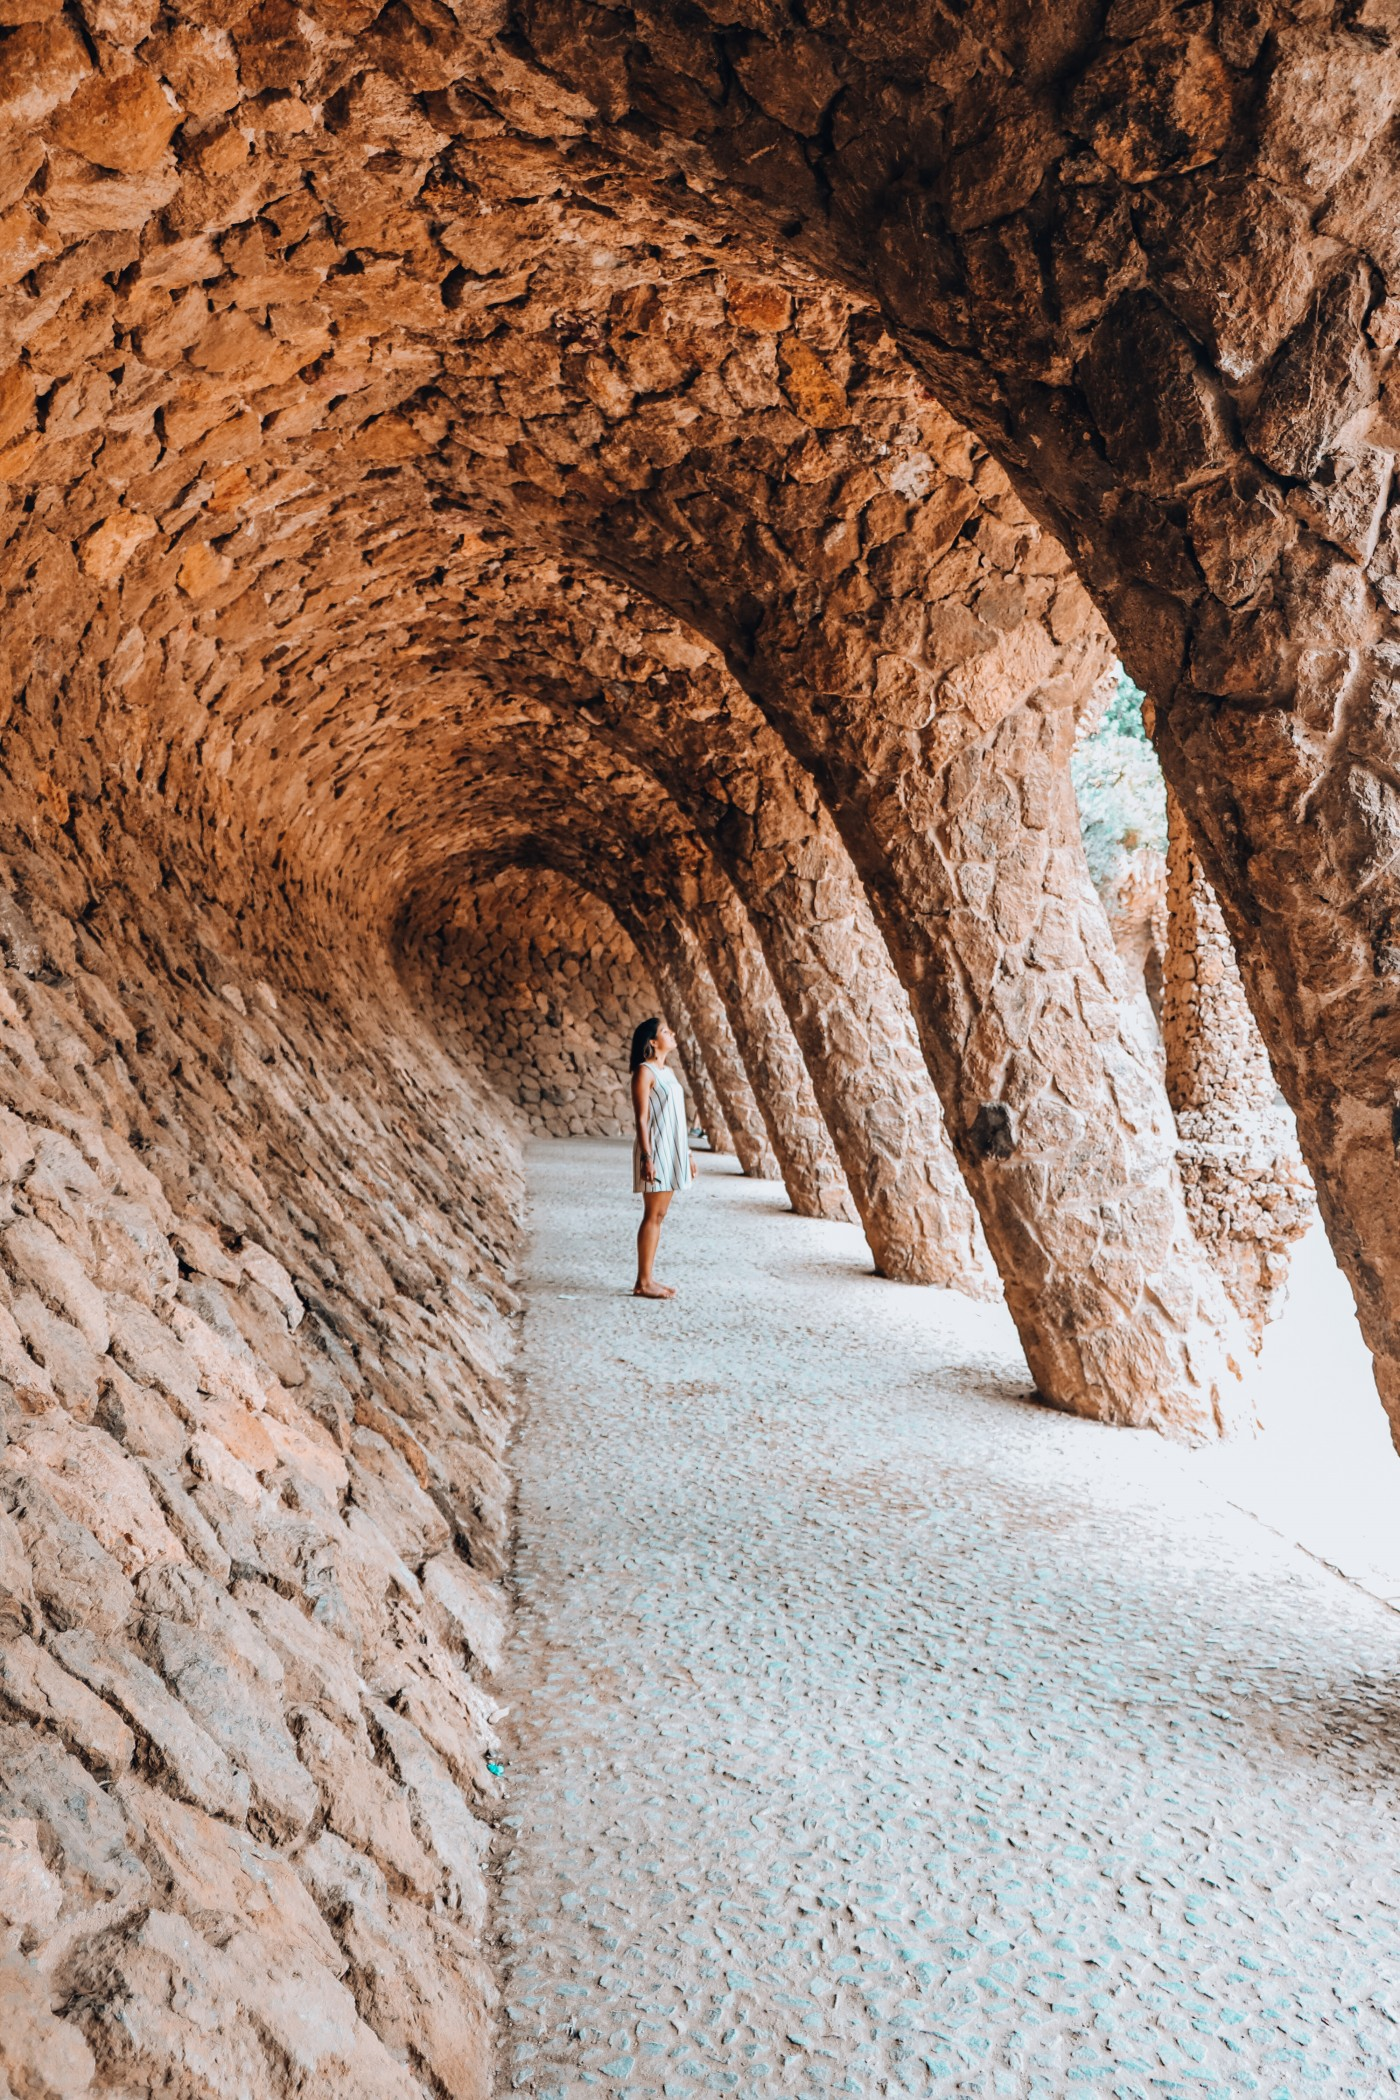 Barcelona: A Look Inside Gaudí's Architecture